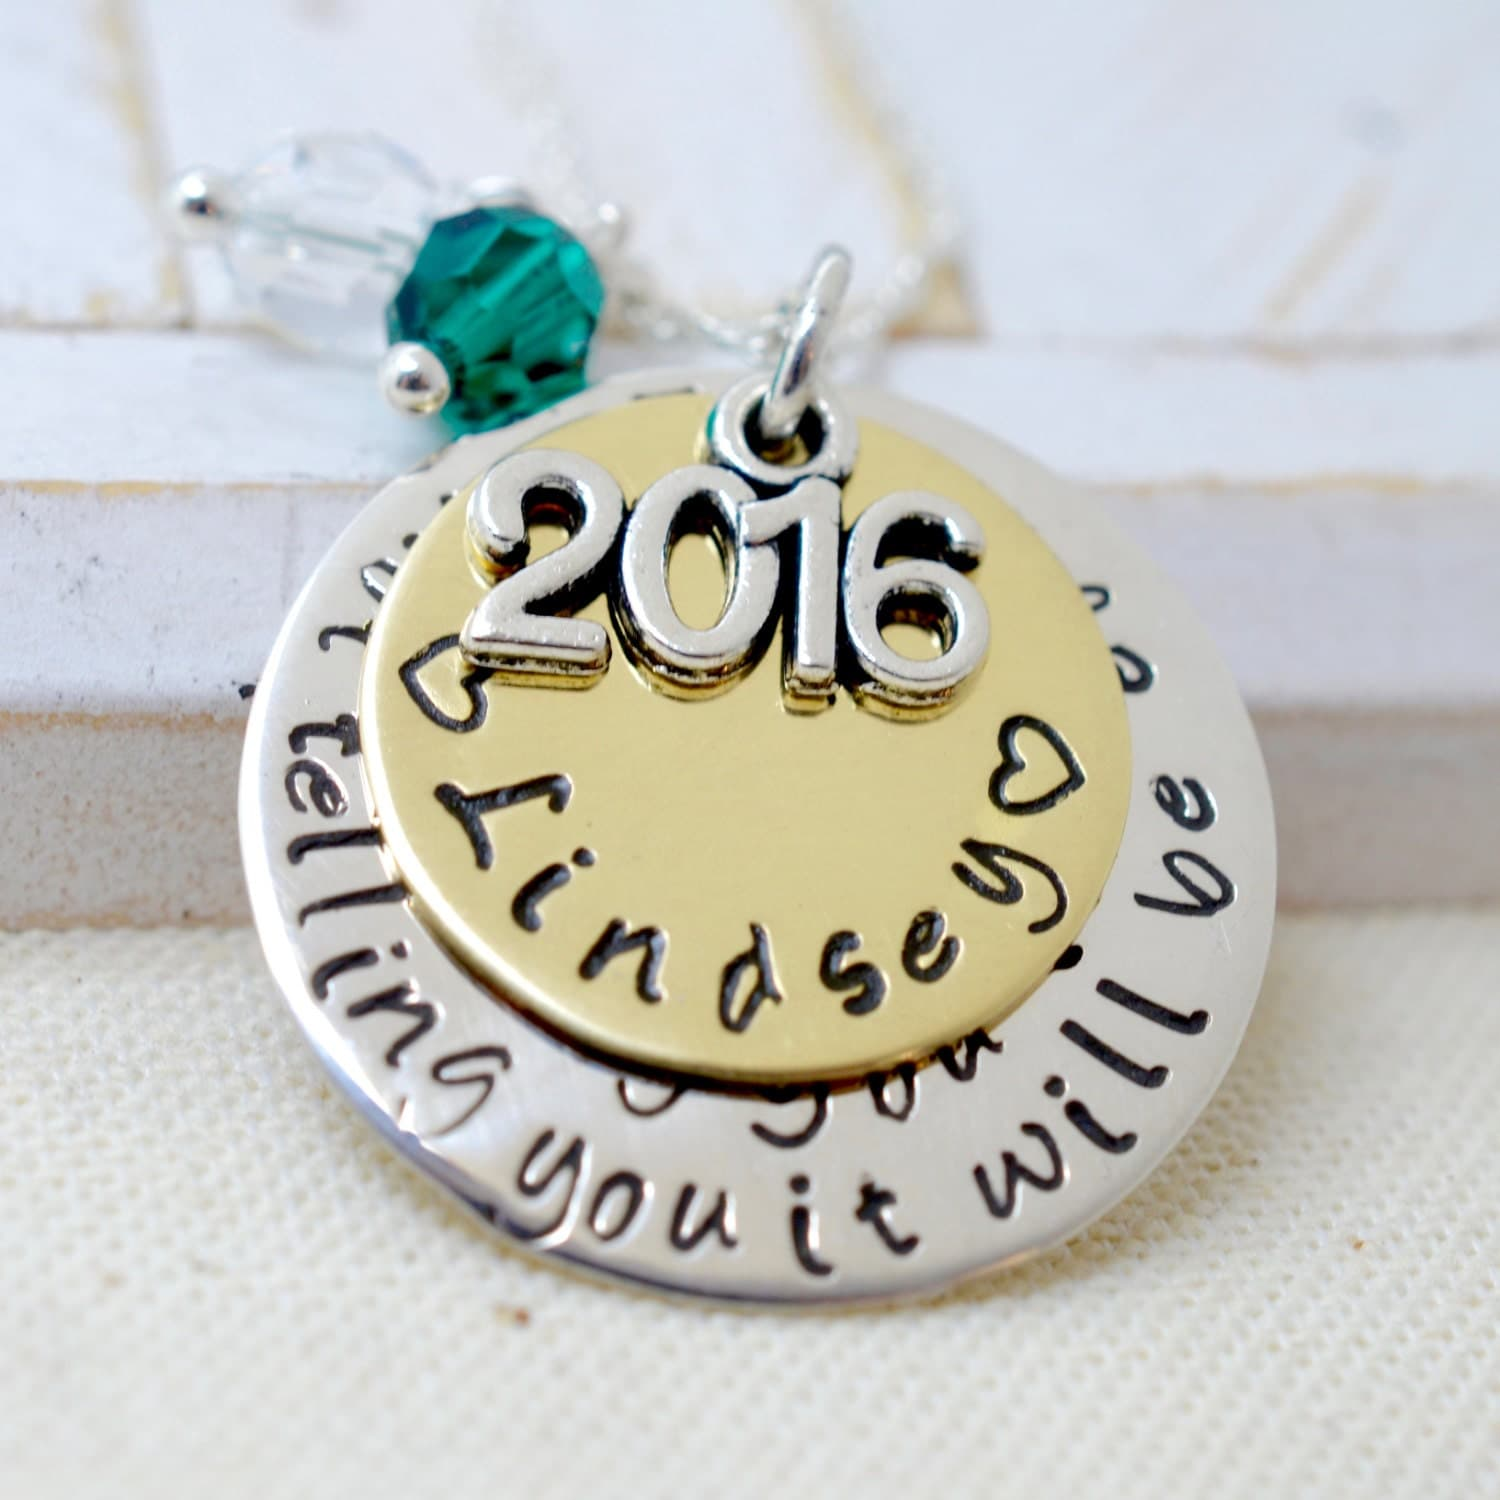 graduation necklace 2016 personalized graduation gift high. Black Bedroom Furniture Sets. Home Design Ideas